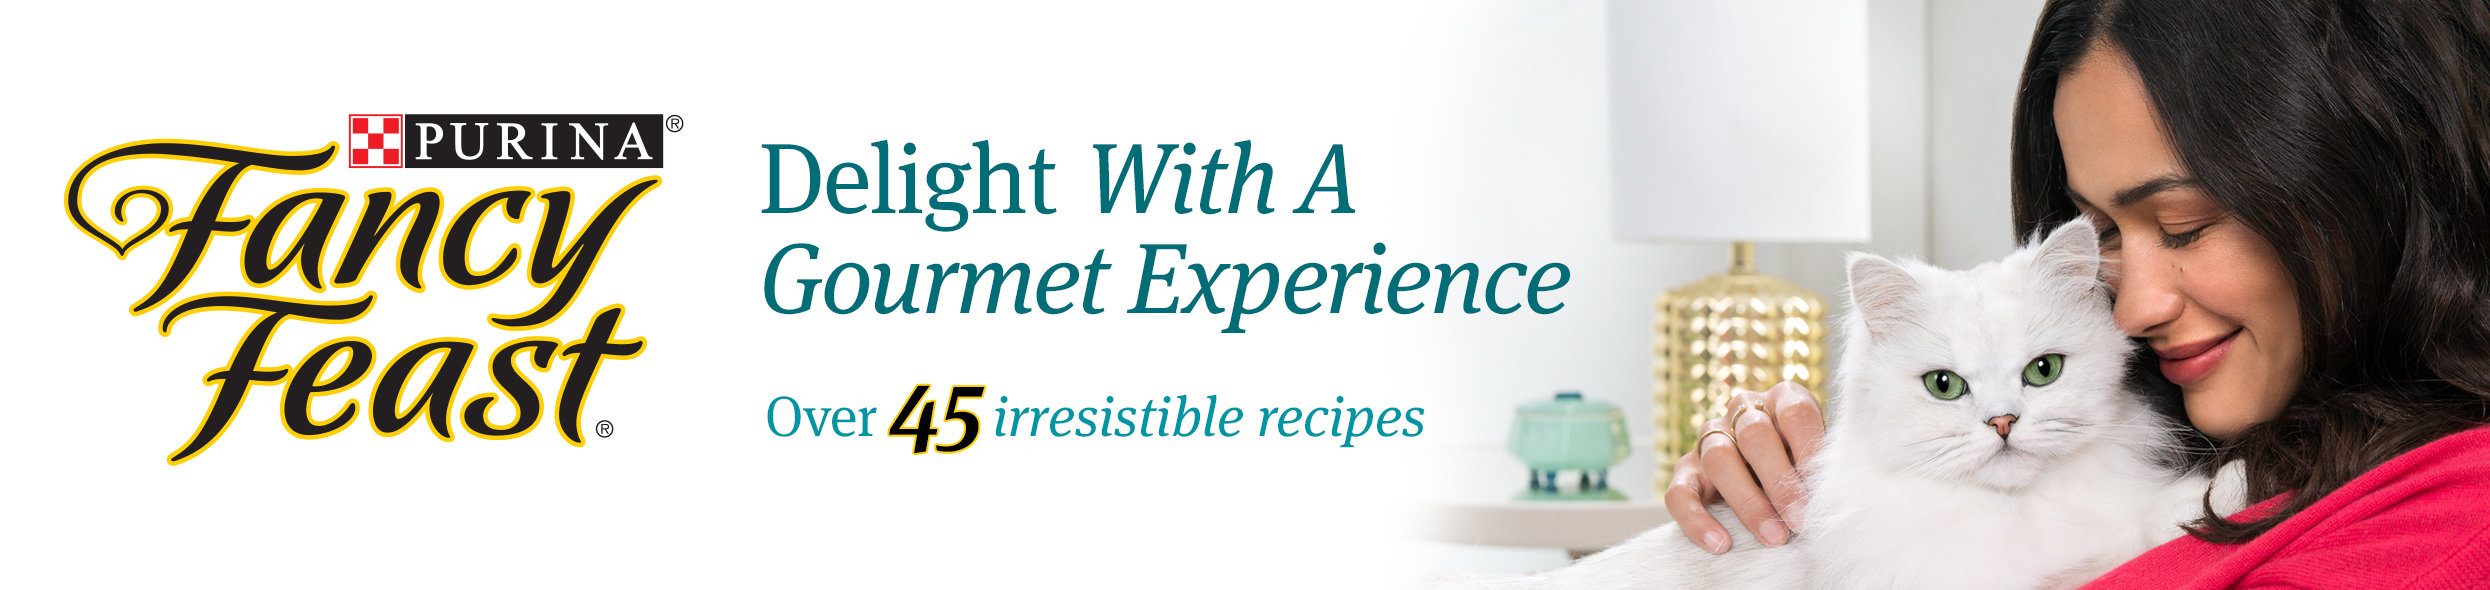 Purina Fancy Feast Delight With A Gourmet Experience Over 45 irresistible recipes